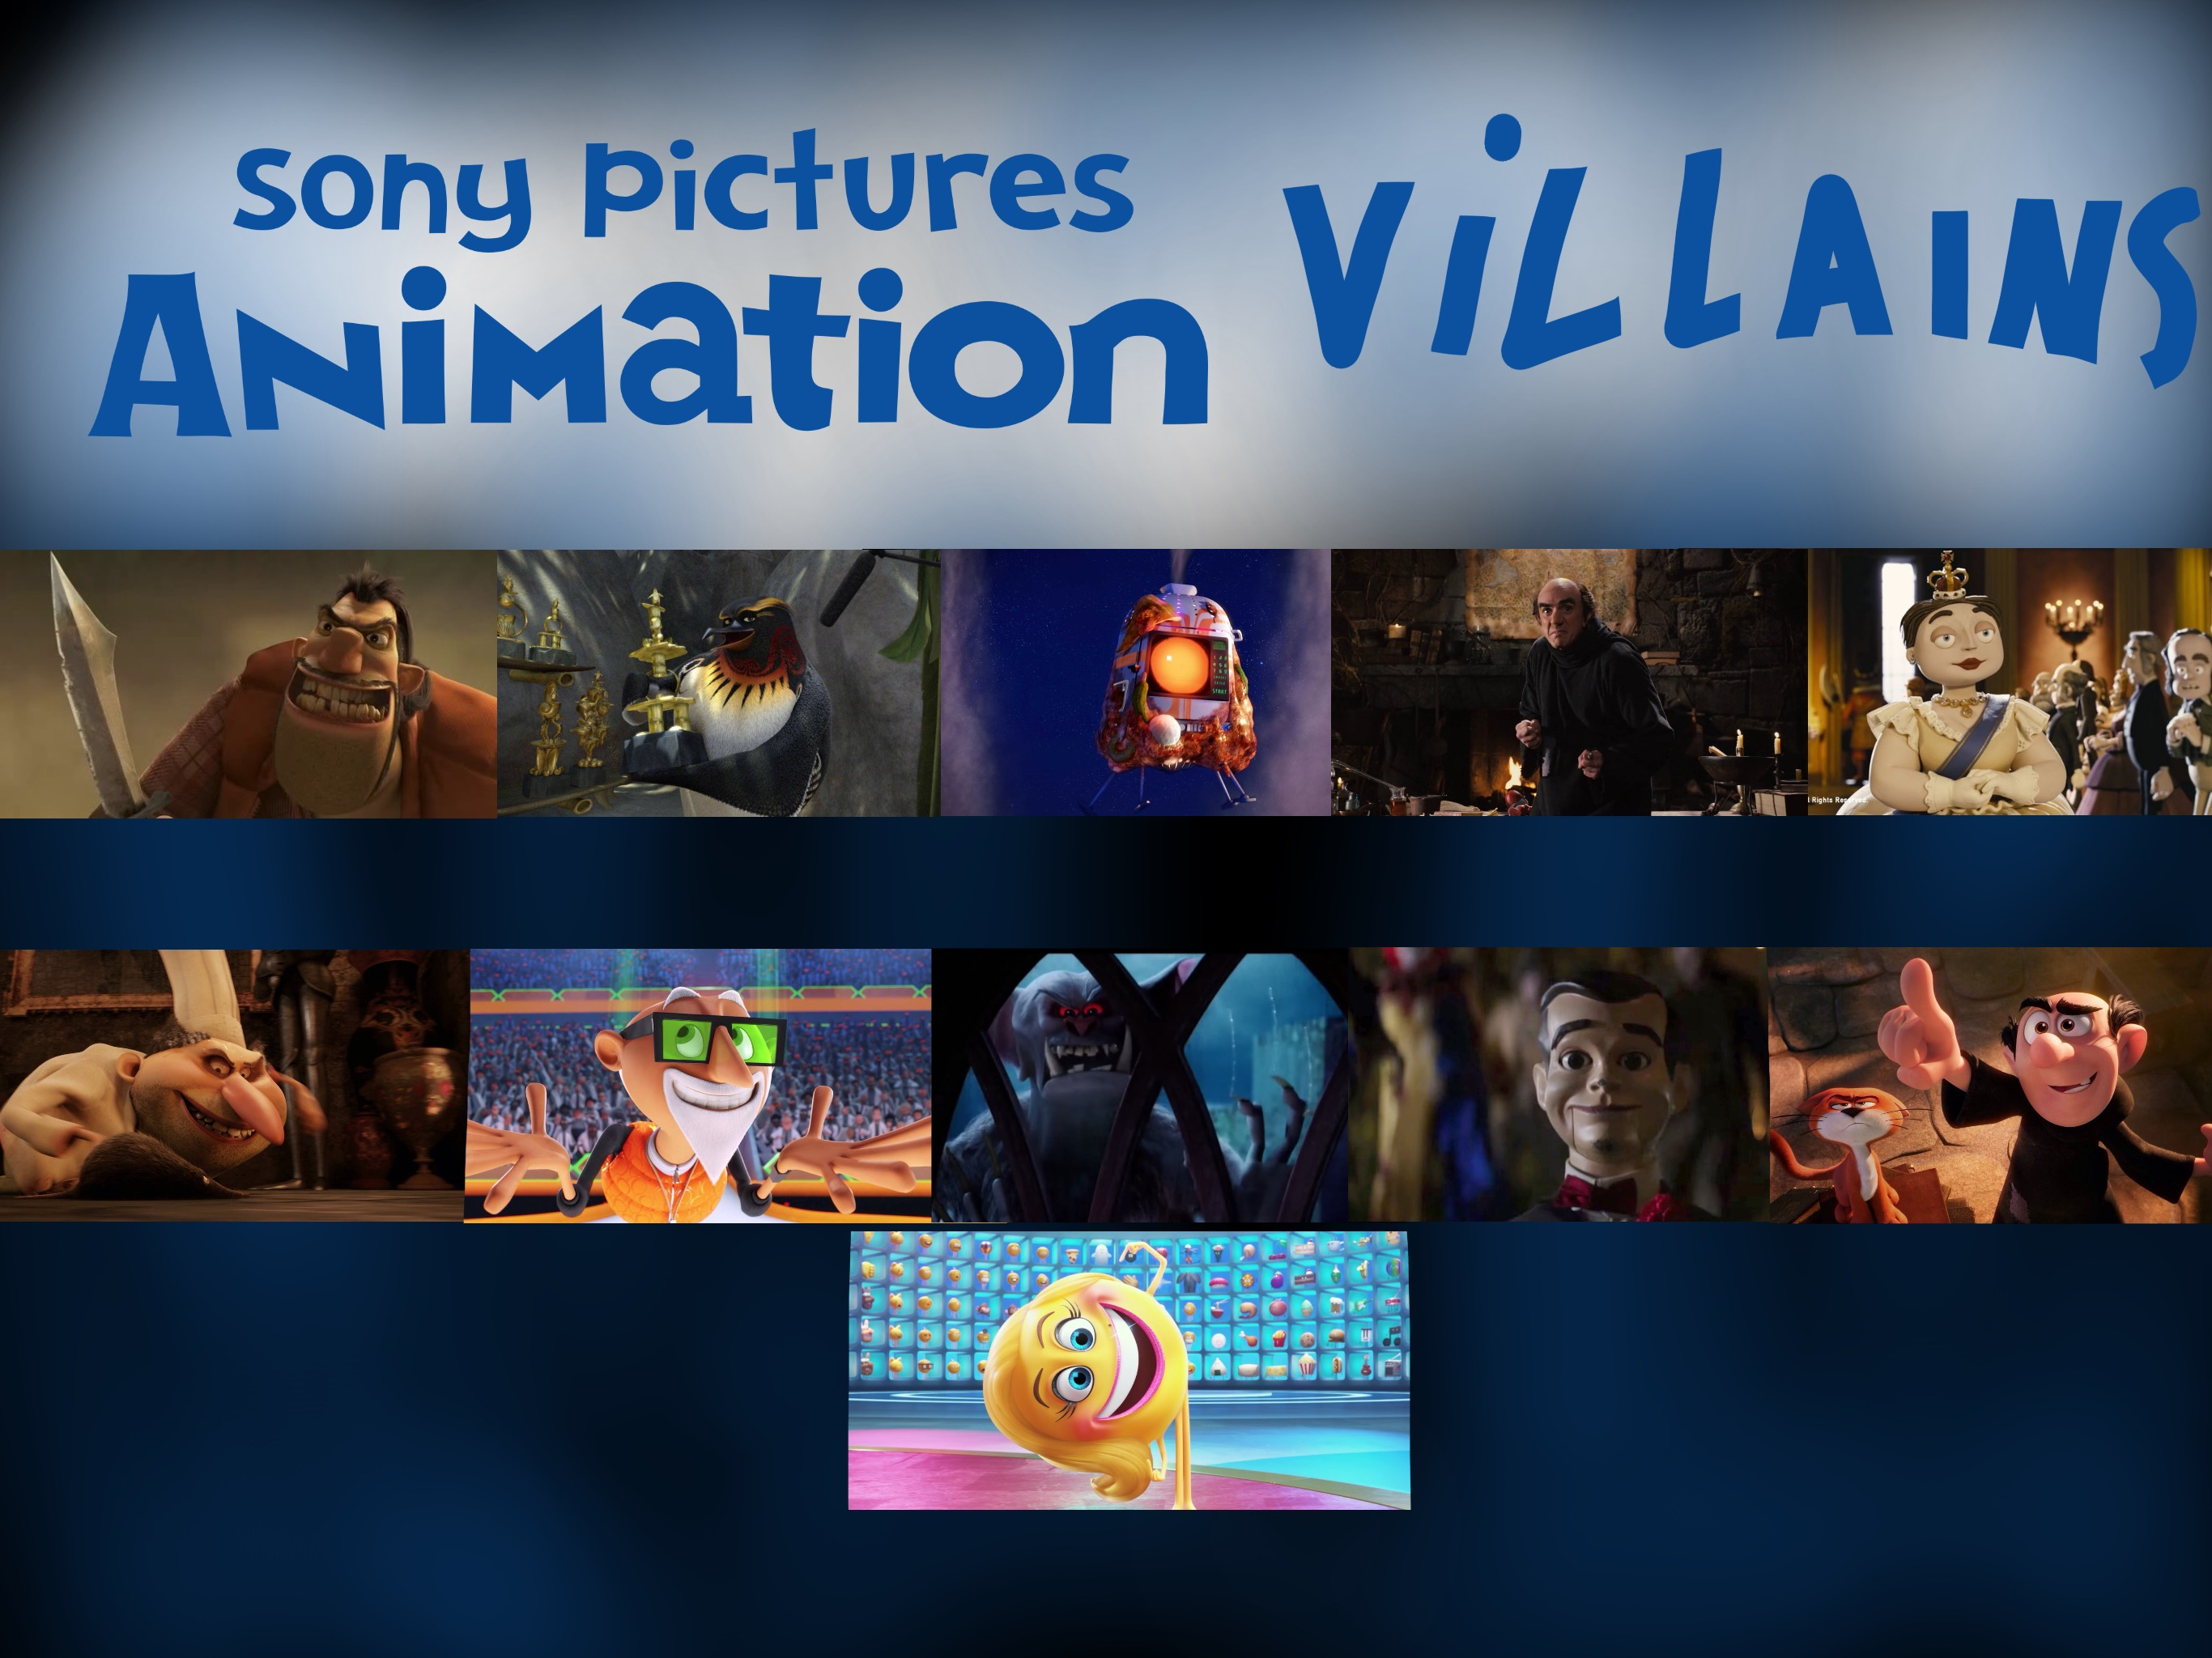 sony pictures animation villains by justsomepainter11 on